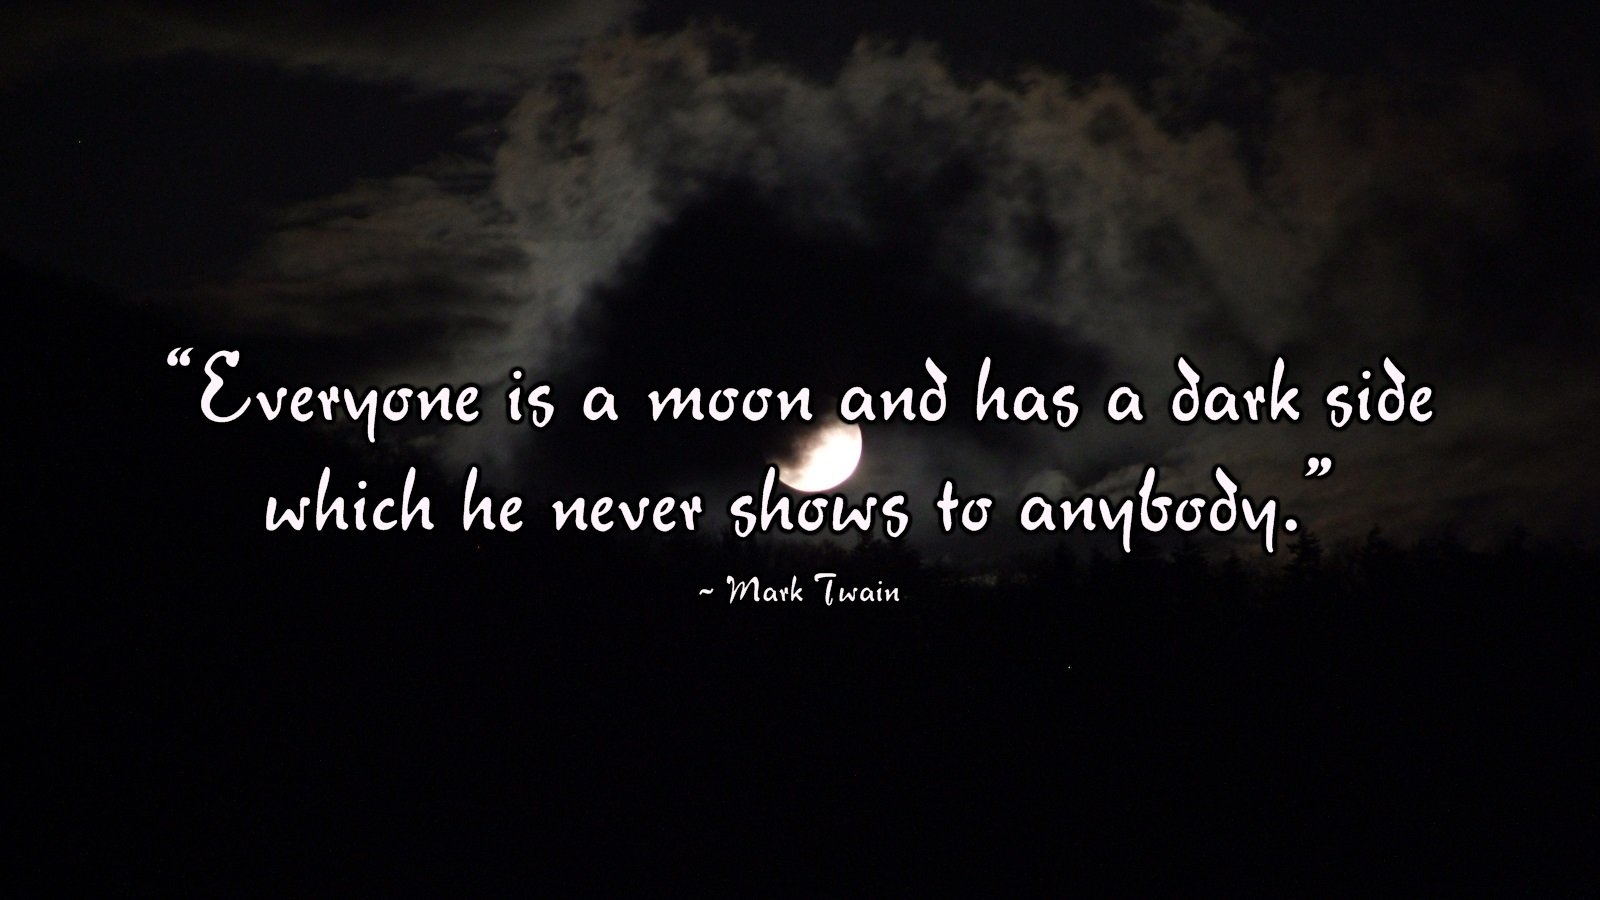 Moon Has a Dark Side Mark Twain Wallpaper Quotes 1600x900